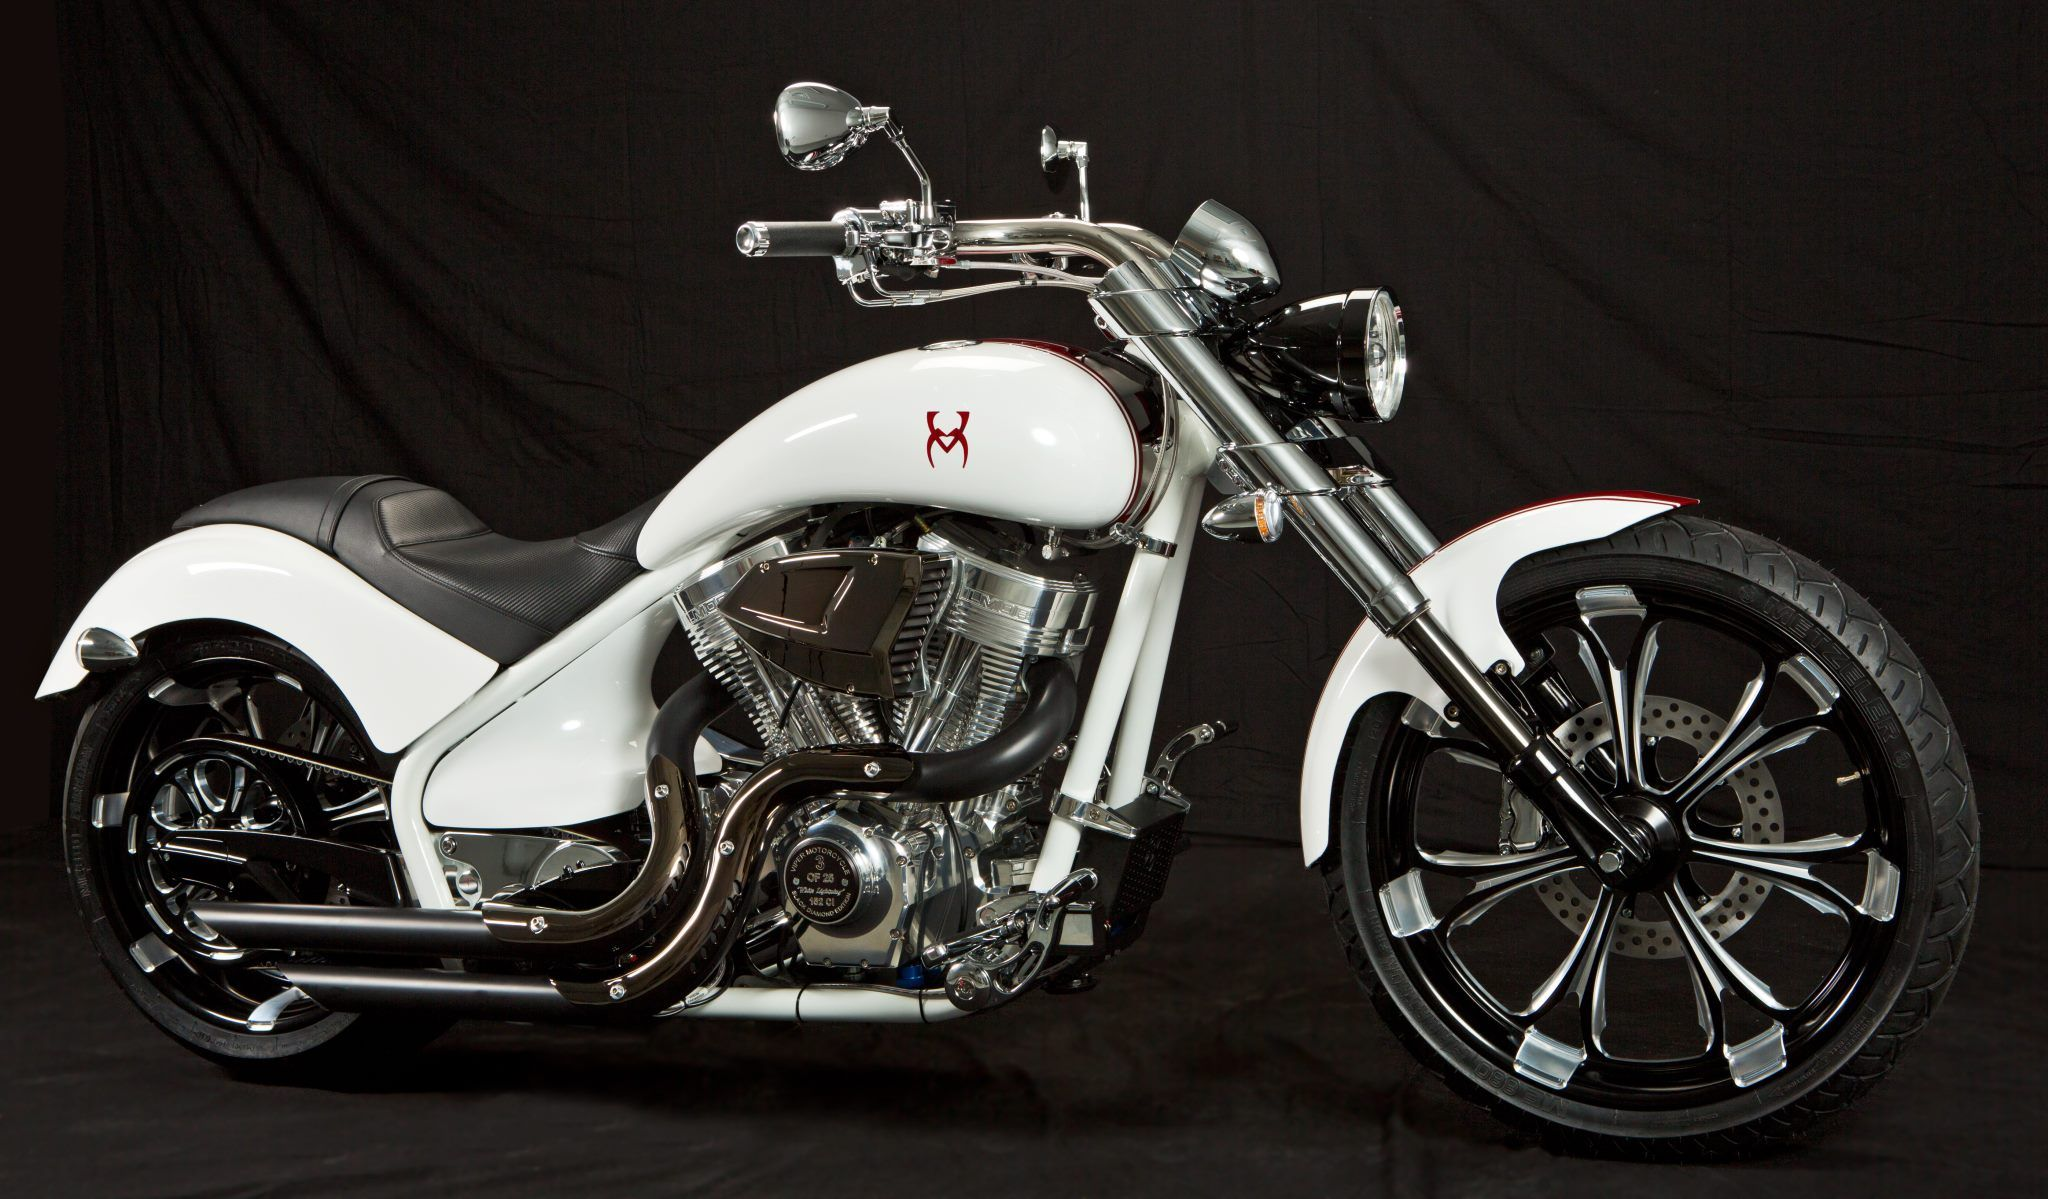 Viper Motorcycle Black Diamond edition. White Lightning!